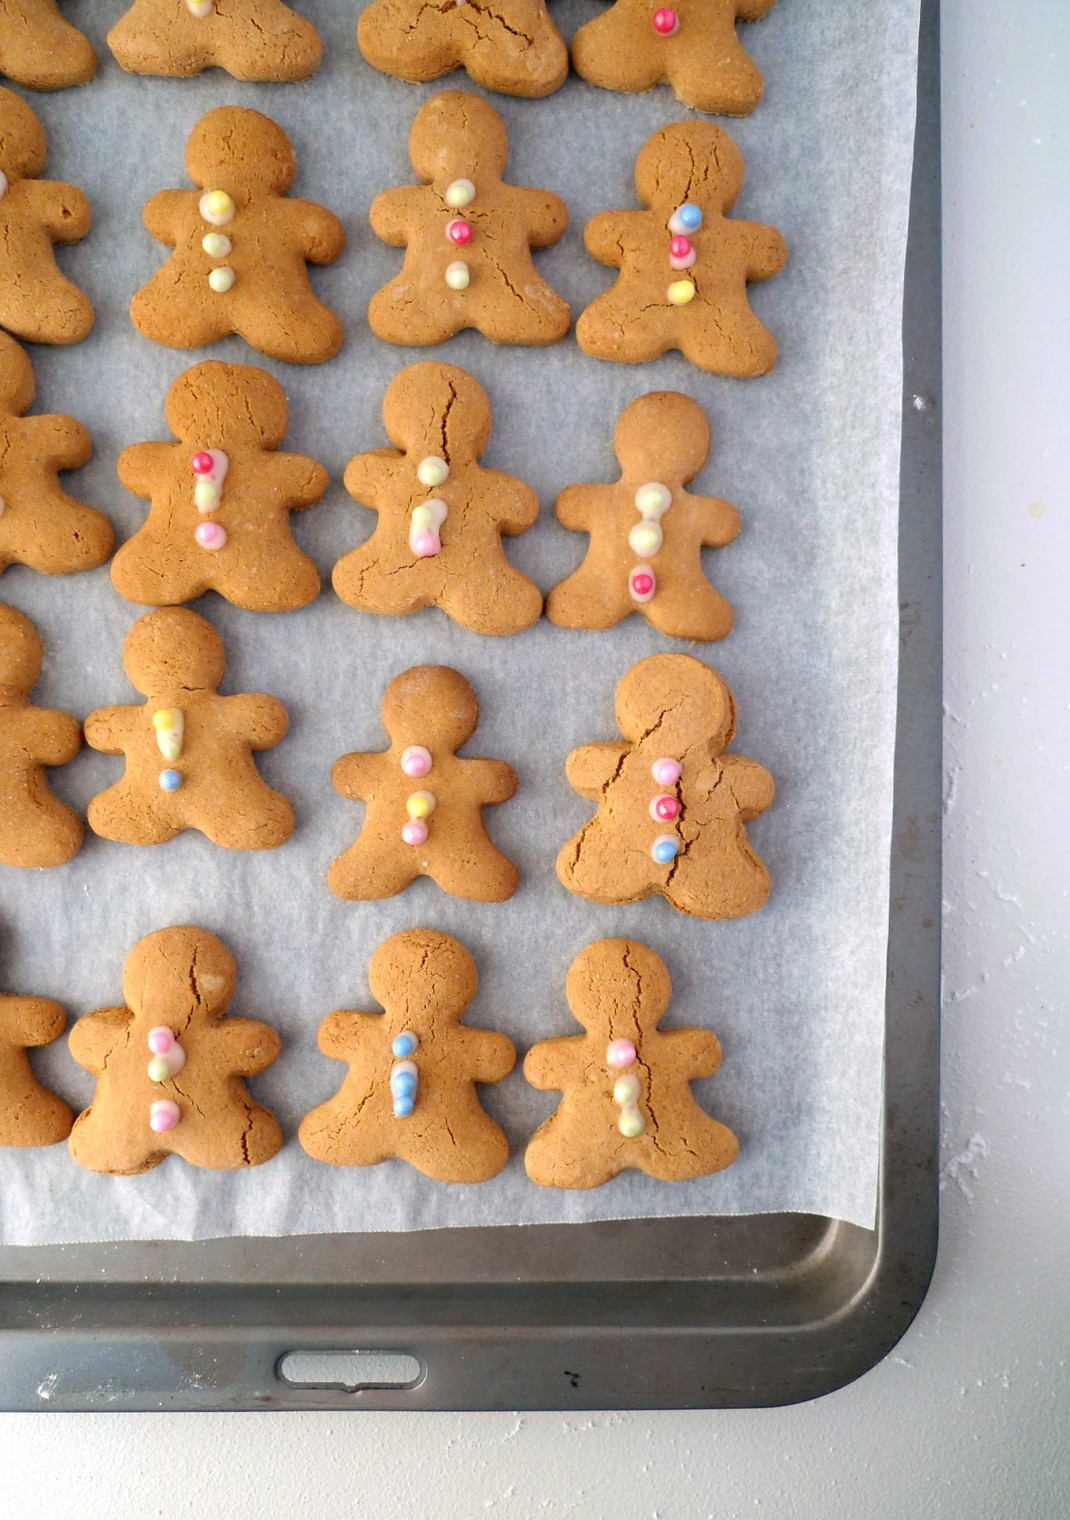 charlotteats gingerbread 4